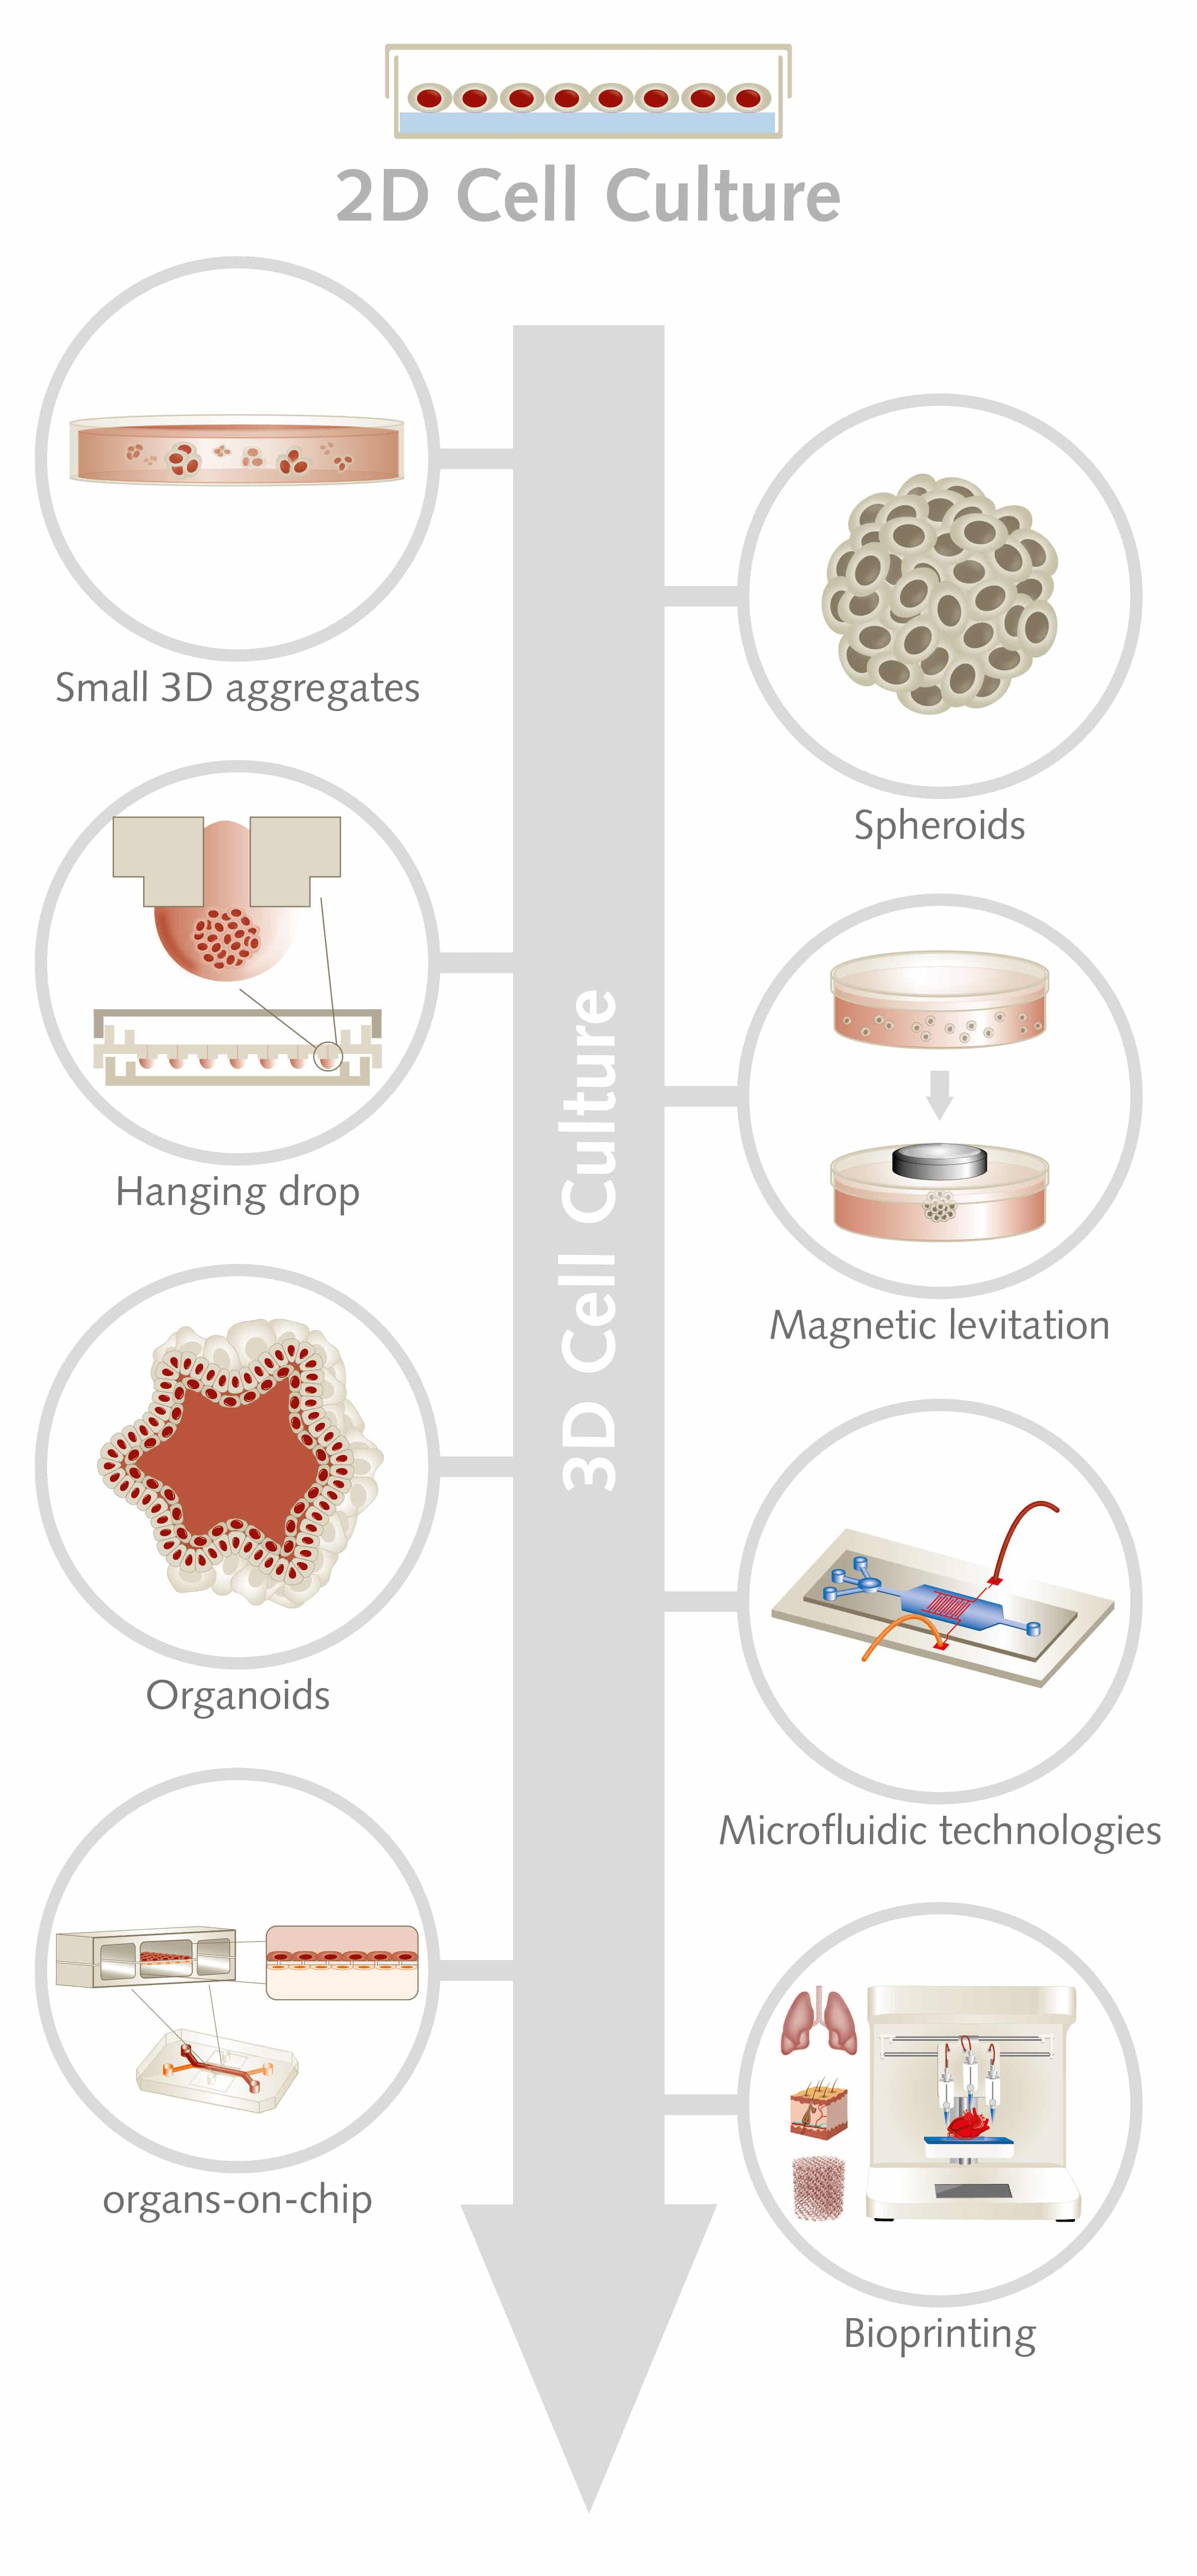 3D Cell Culture: Moving from simple technologies to sophisticated approaches